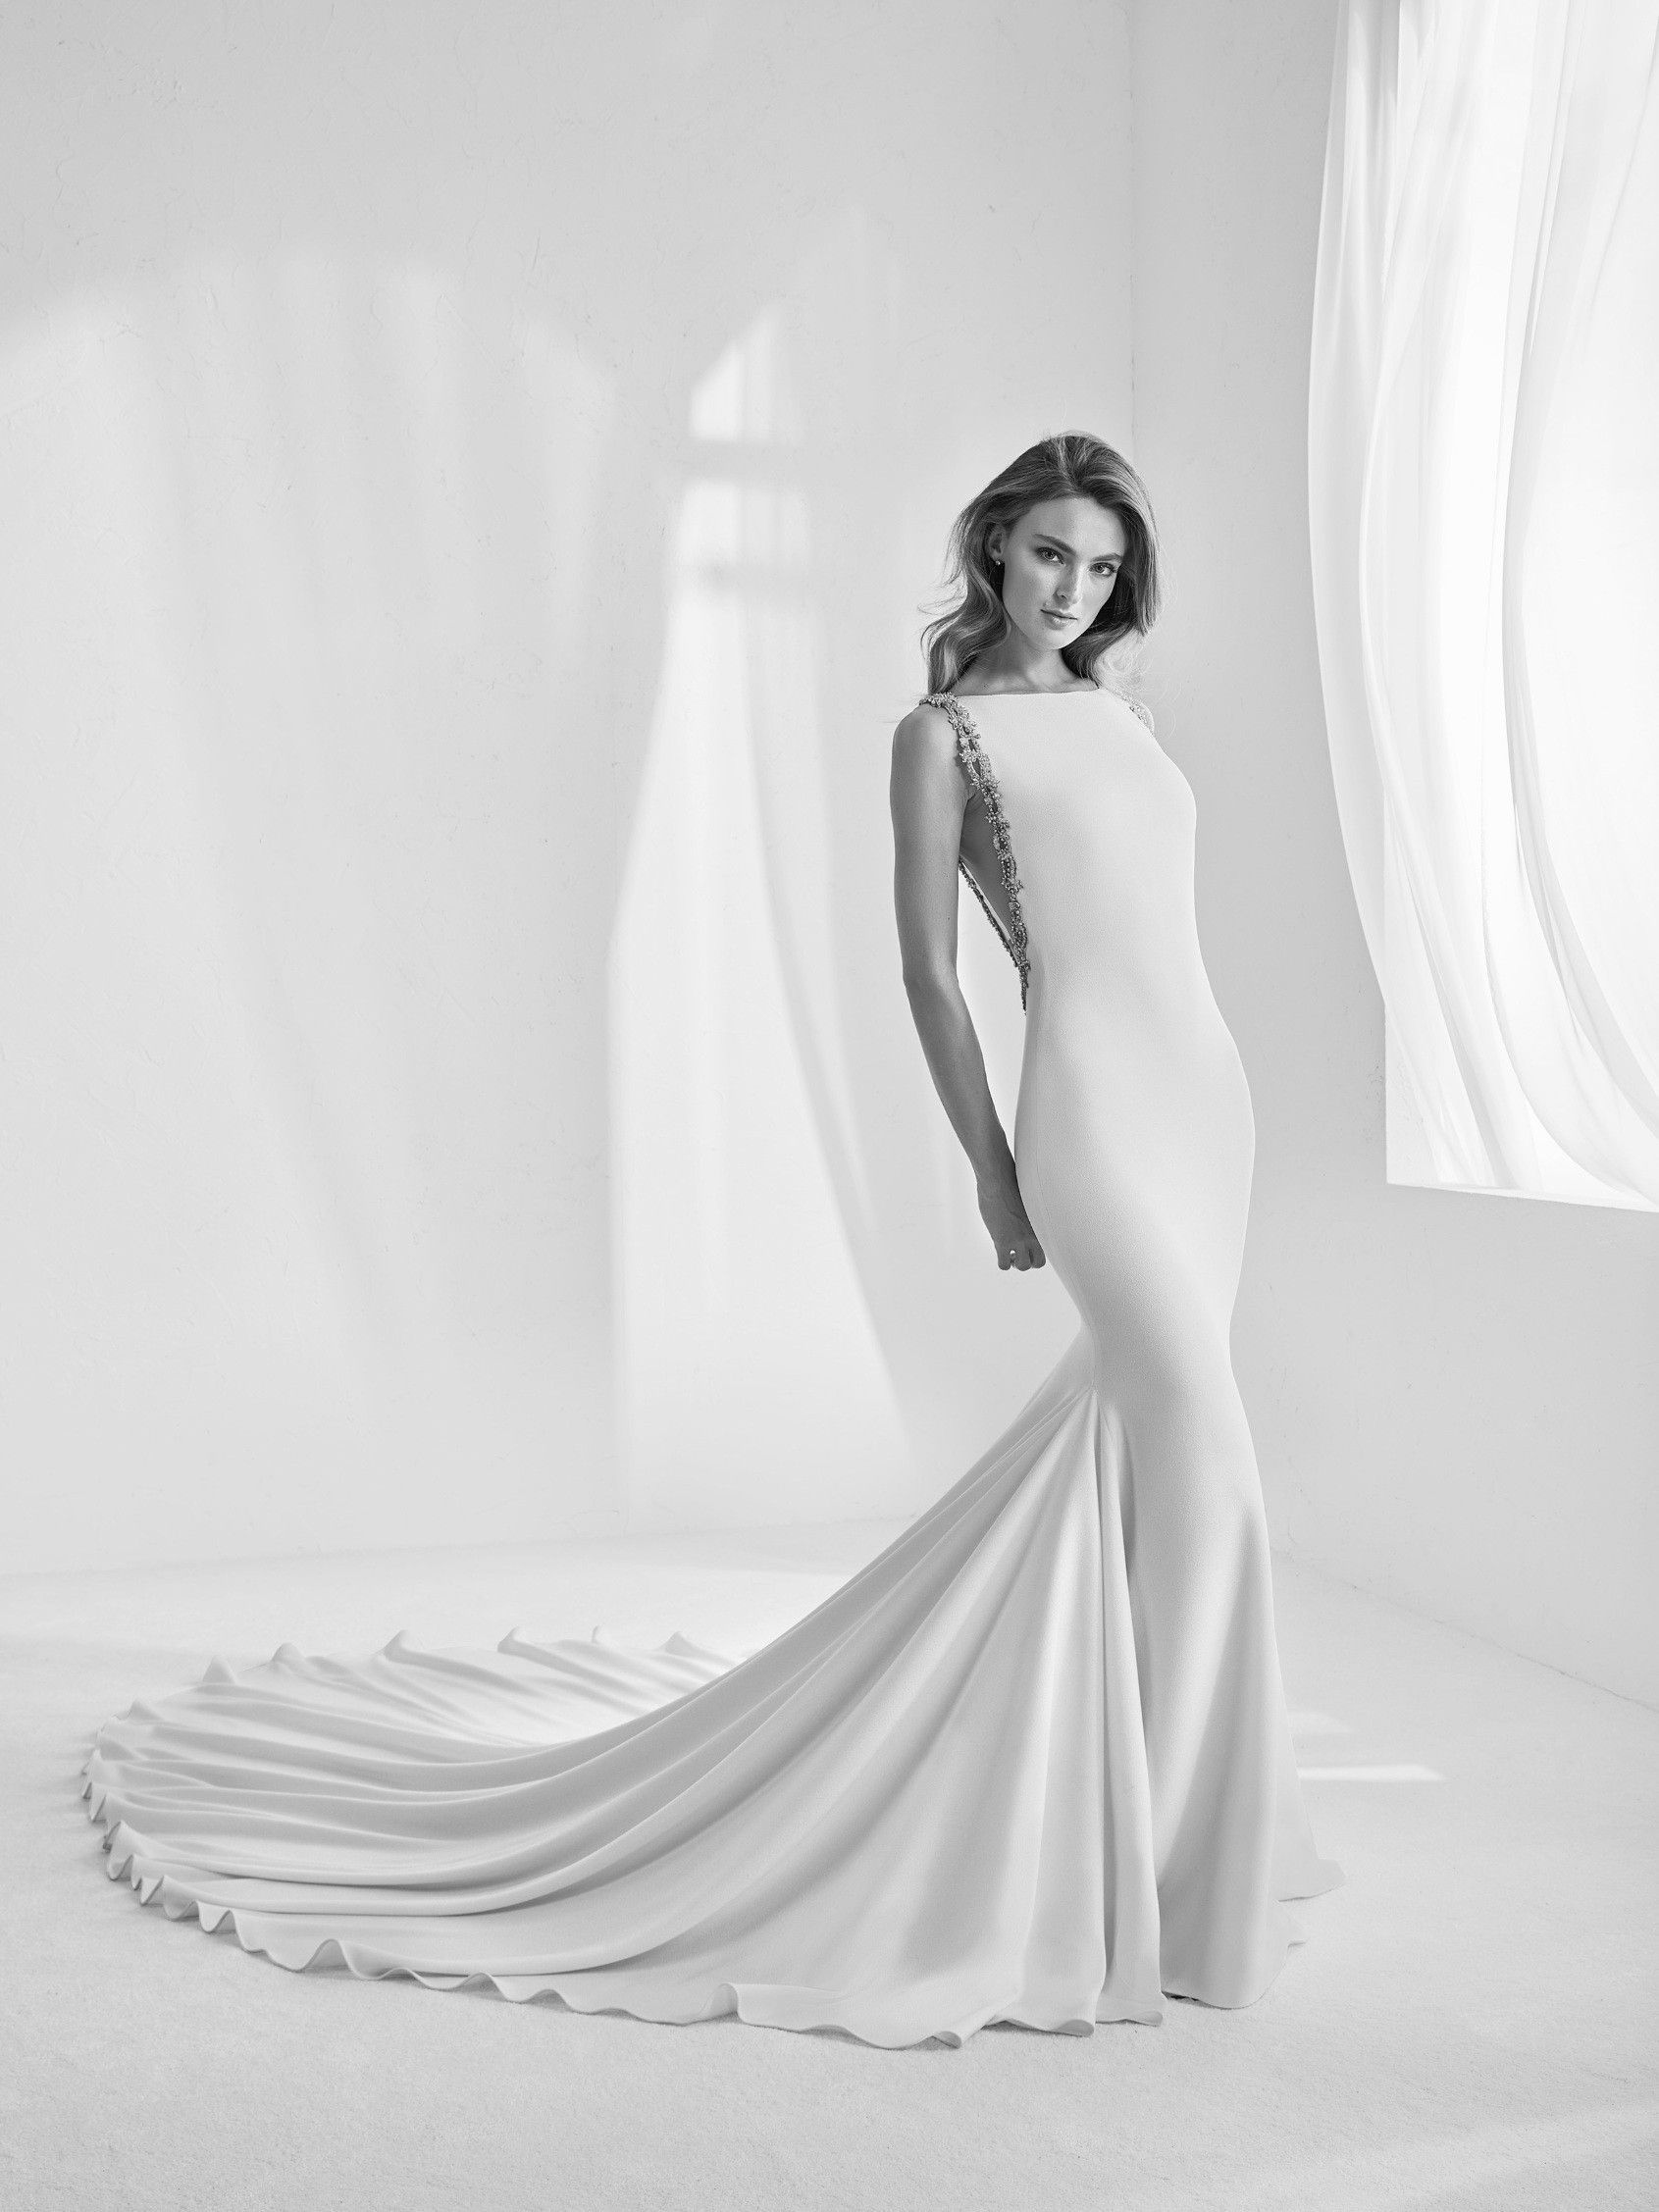 Vestido de novia corte sirena elegante - Rambla | Wedding Dress ...